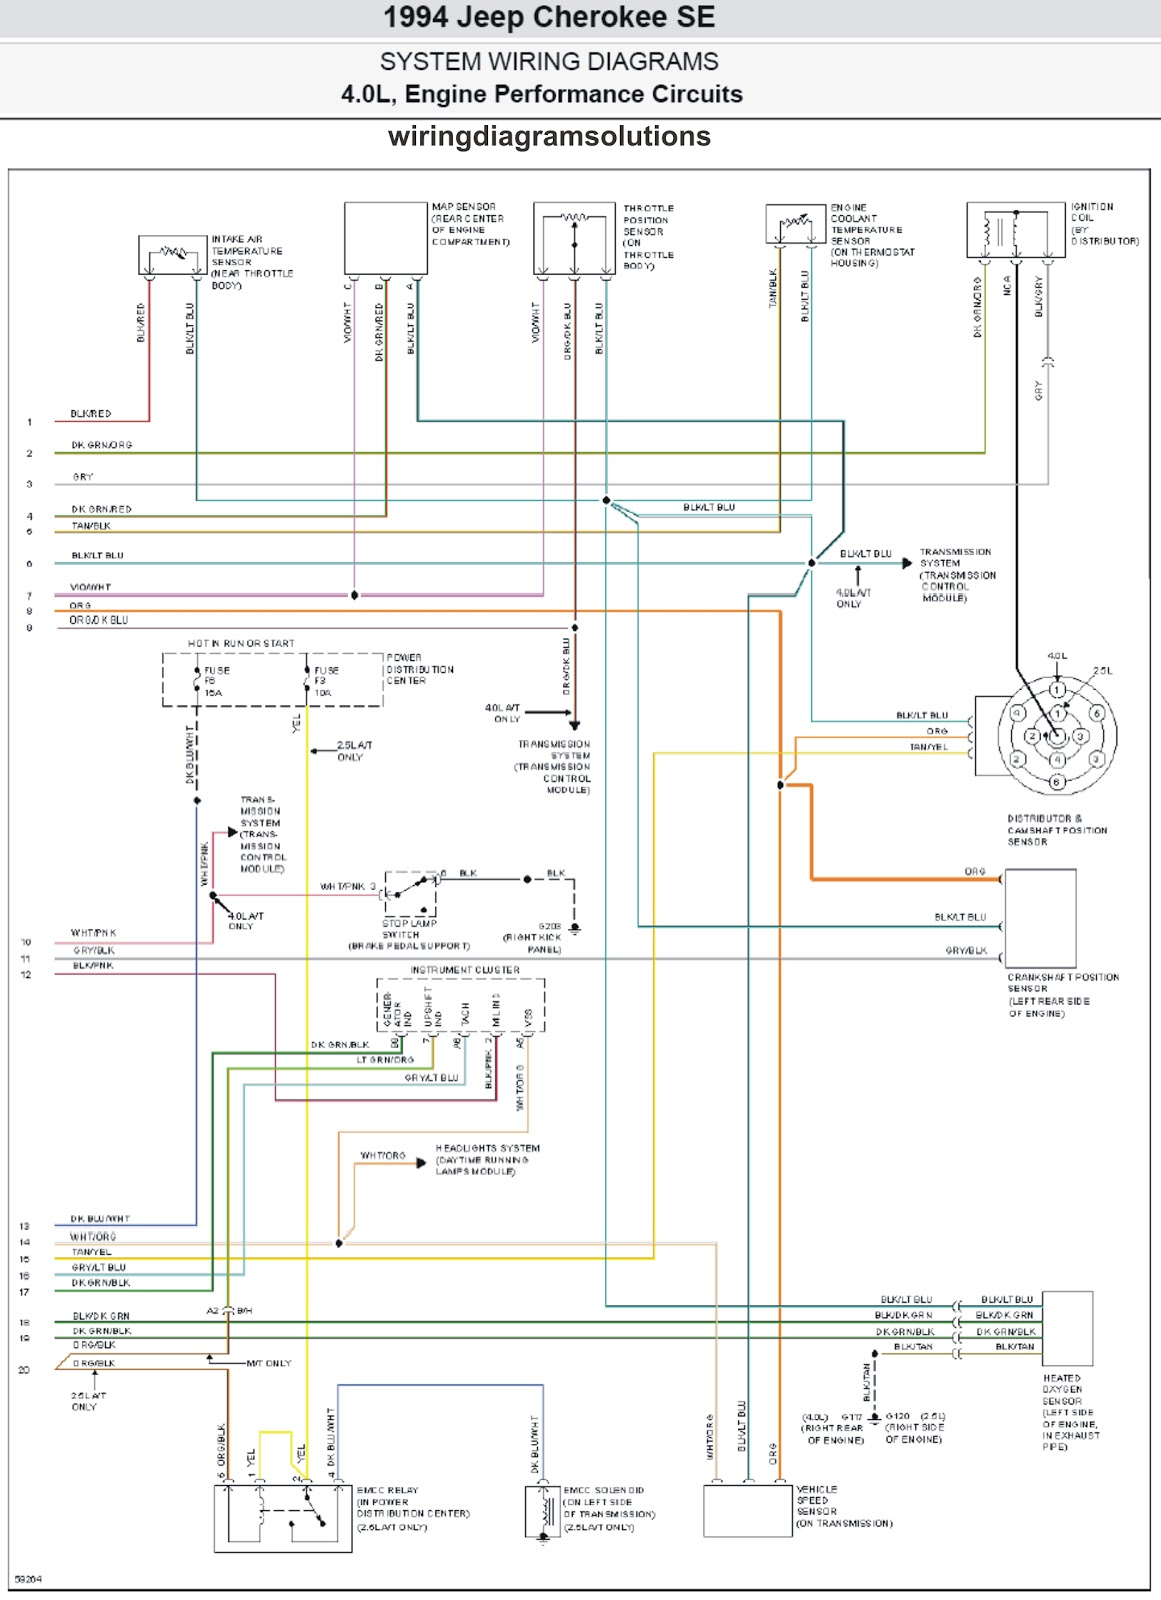 2003 Ford Ranger 2 3l Engine Diagram Electronicswiring Jeep Wrangler Yj Wiring Harness And Electrical System Troubleshooting 95 May 2011 Schematic Diagrams Solutions 2008 Fusion 3